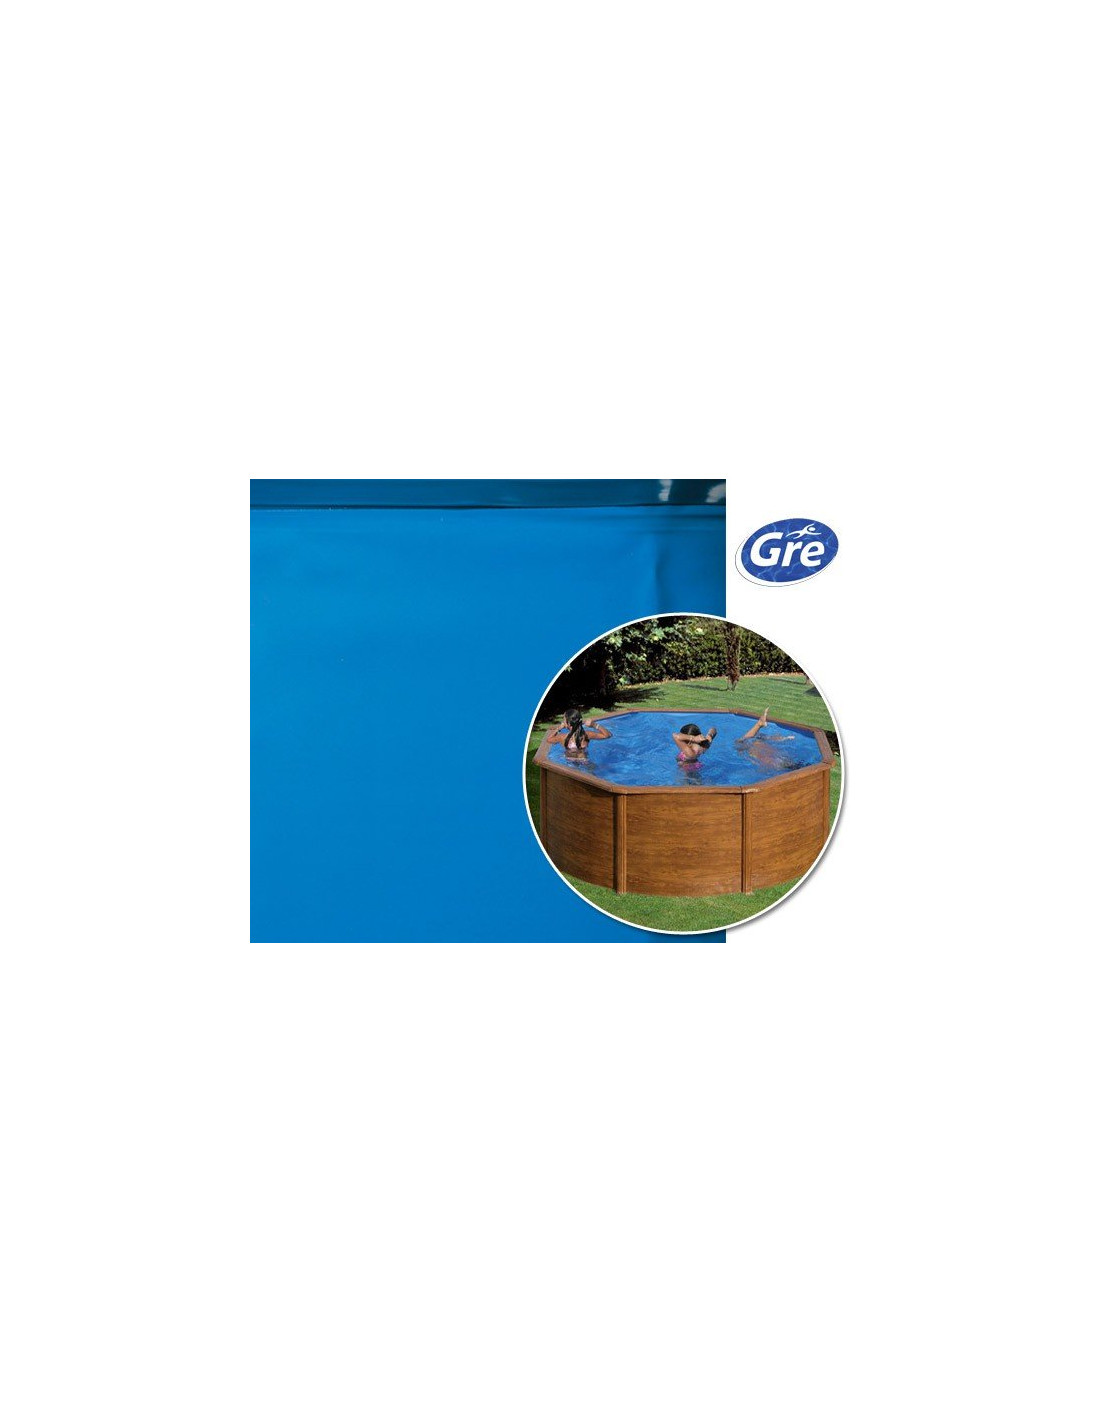 Liner piscine hors sol ronde gre pool coloris bleu for Liner piscine gre ronde